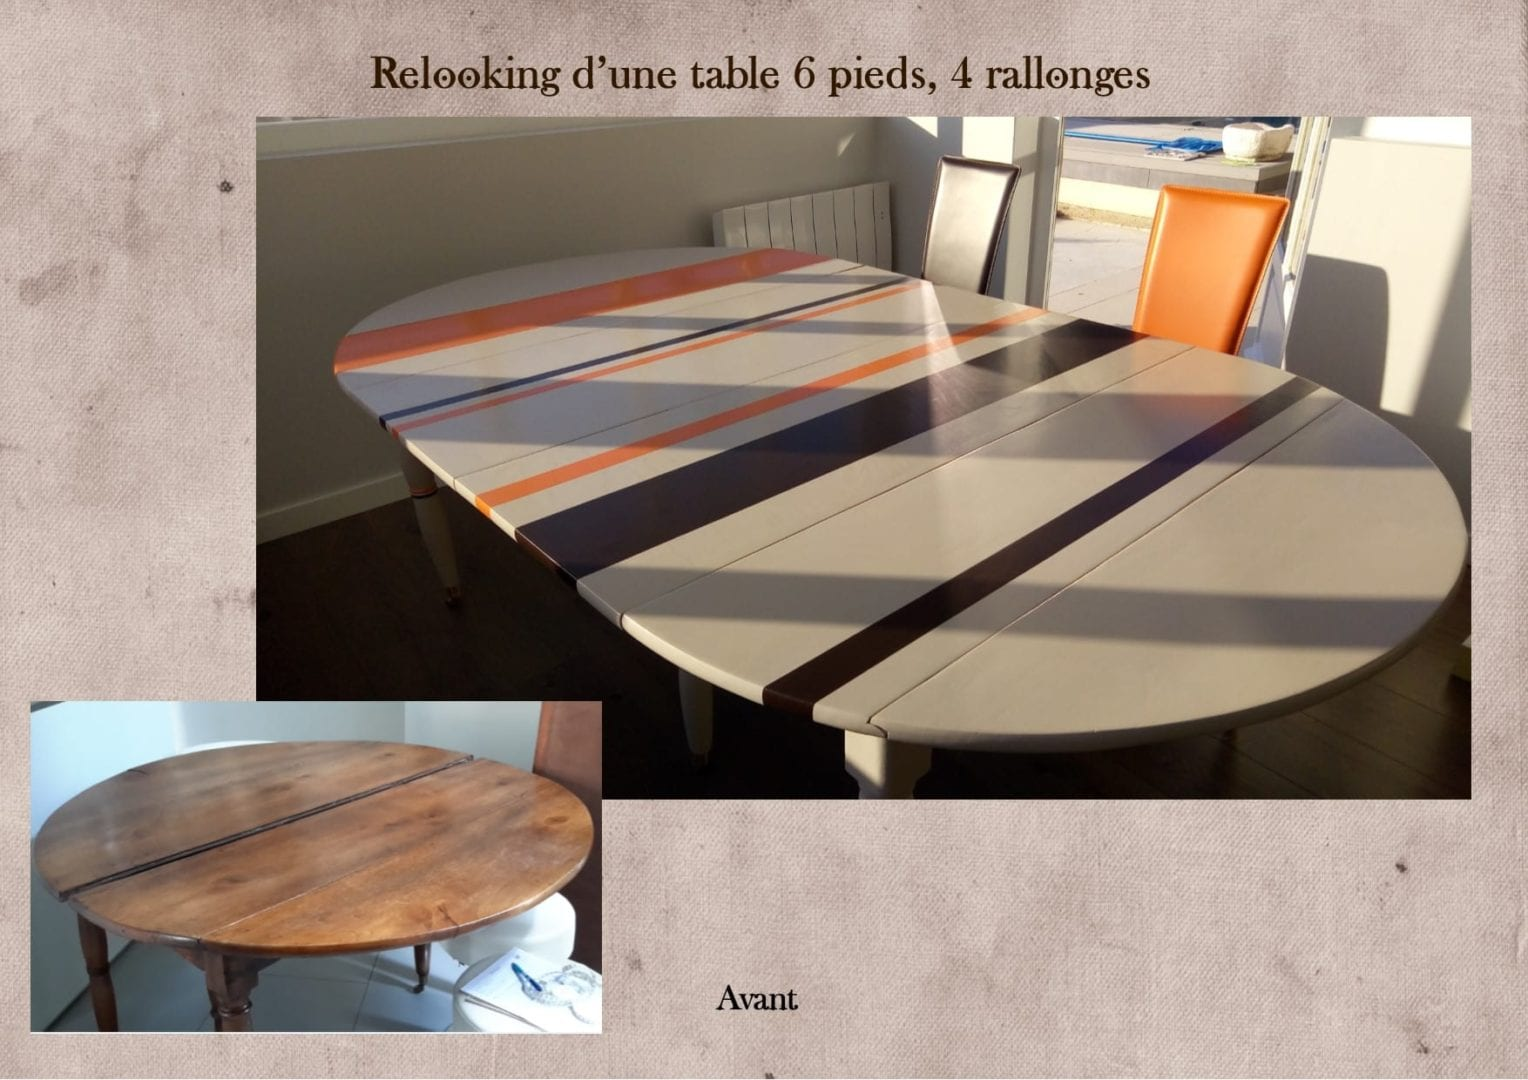 Relooking-table-rayures-lexquisetrouvaille